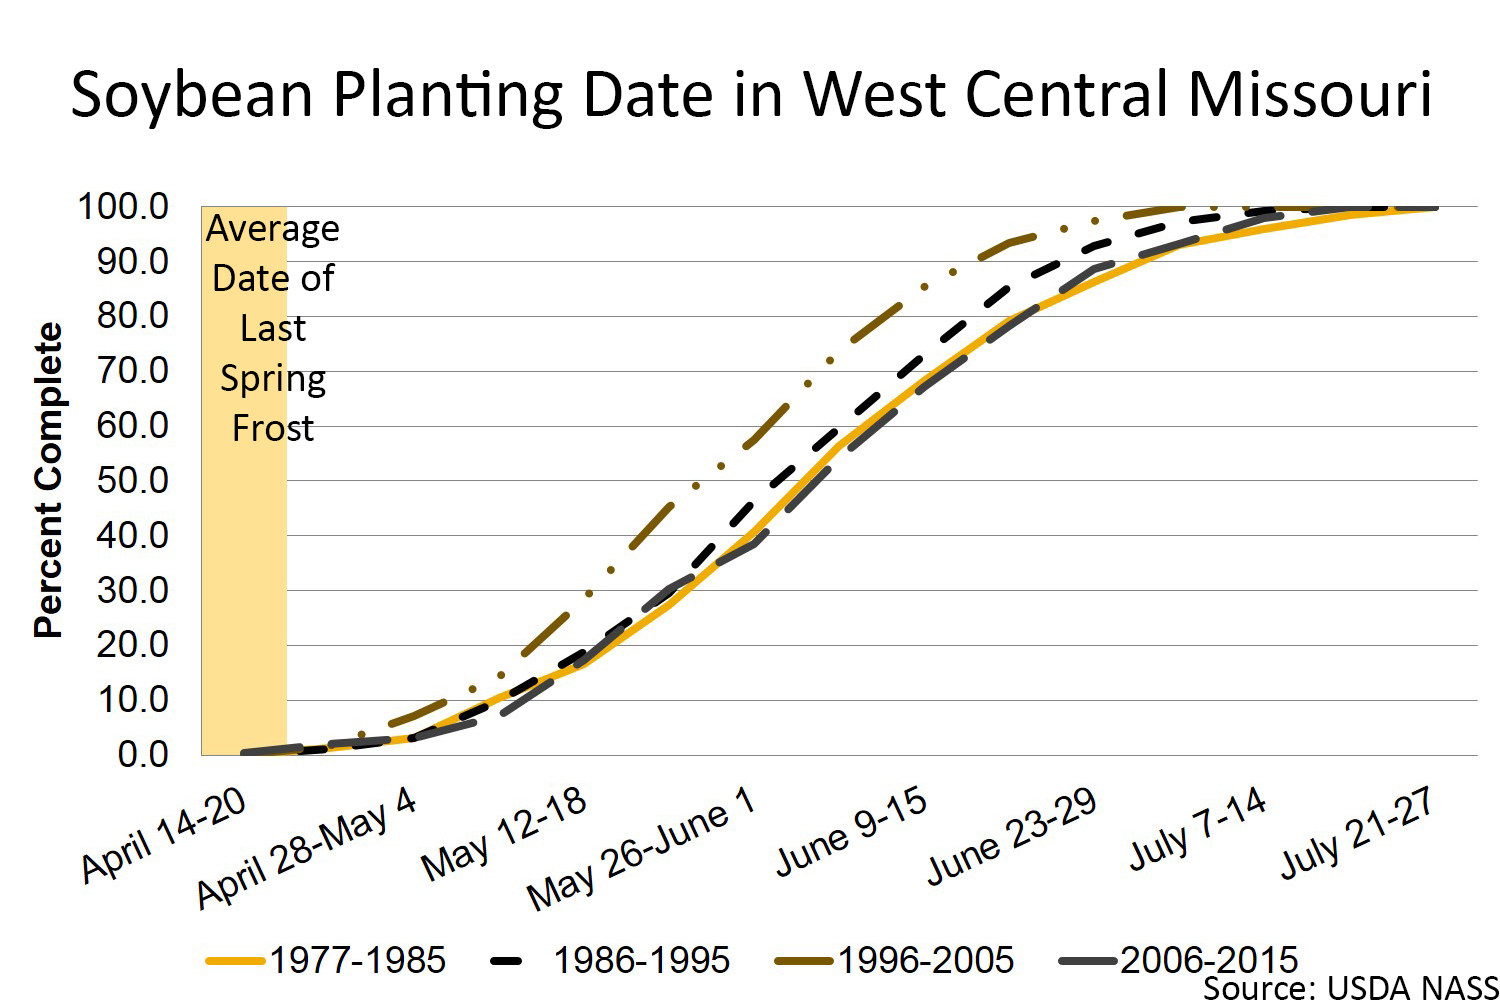 Soybean planting date in west central Missouri chart